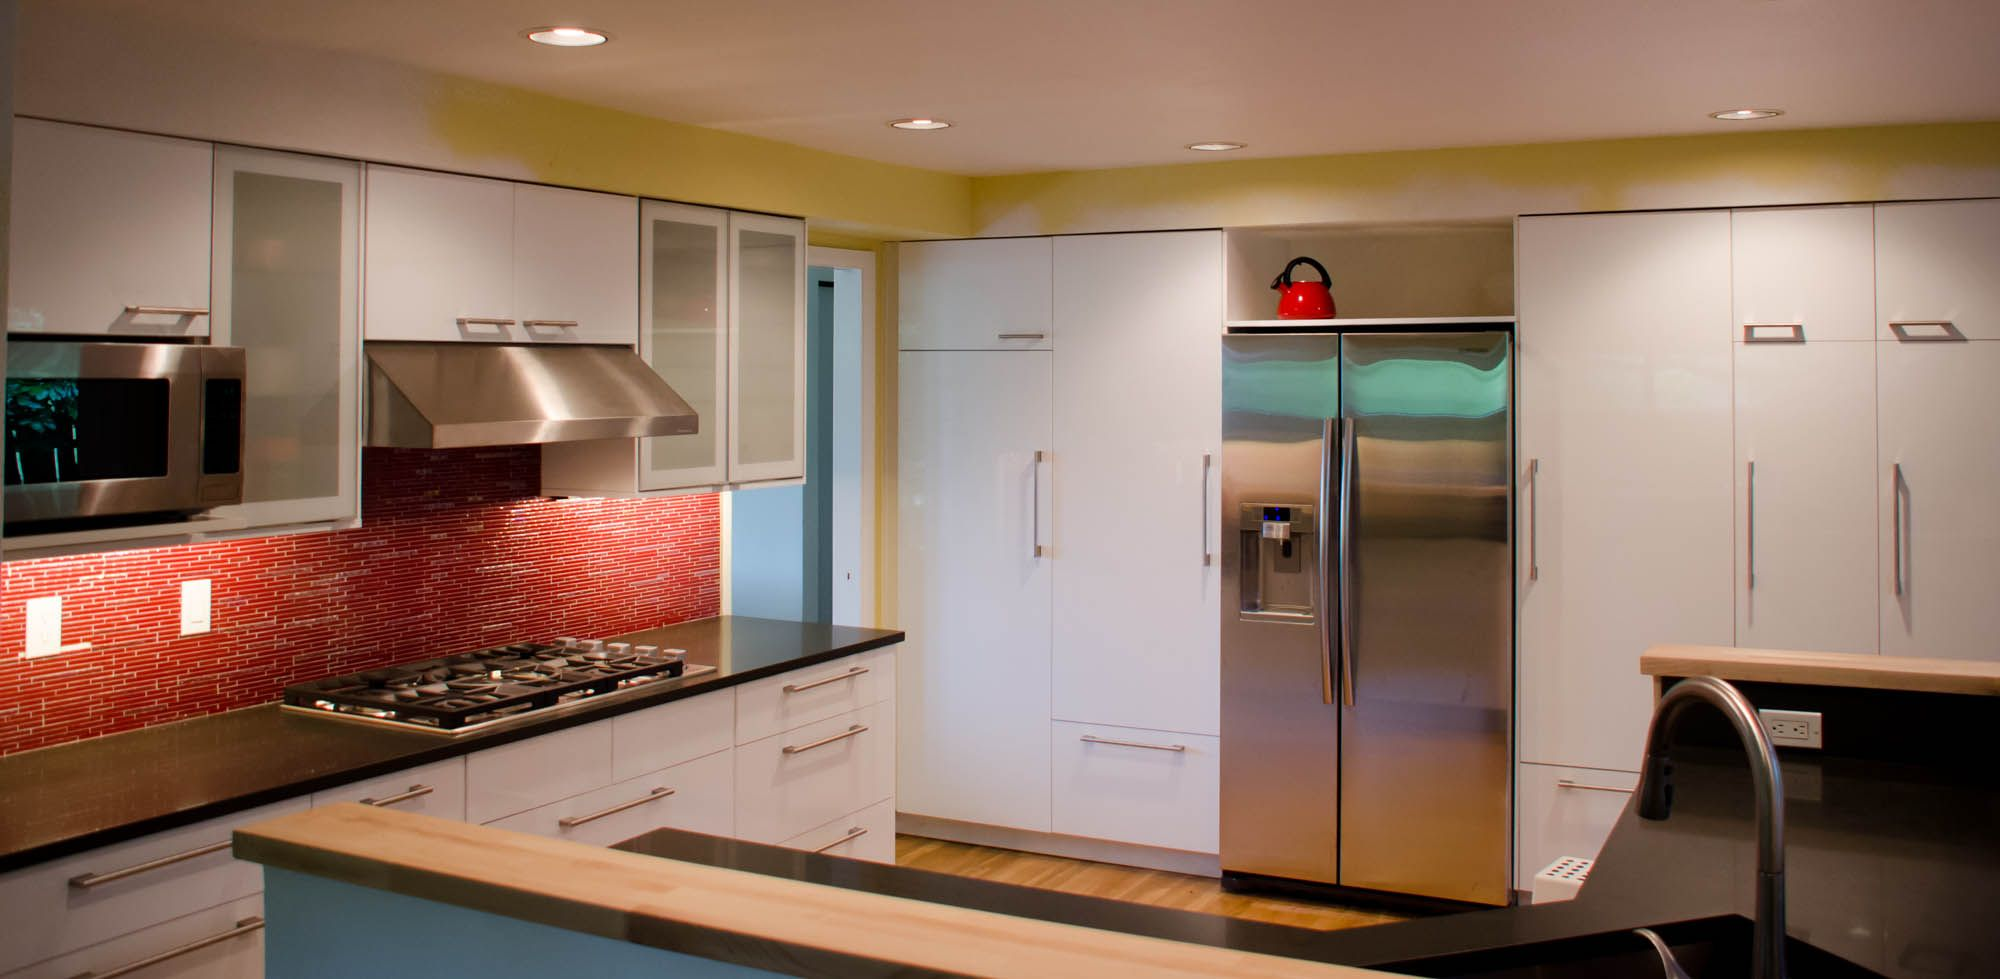 Most Seen Inspirations in the Appealing Kitchen Pantry Cabinet